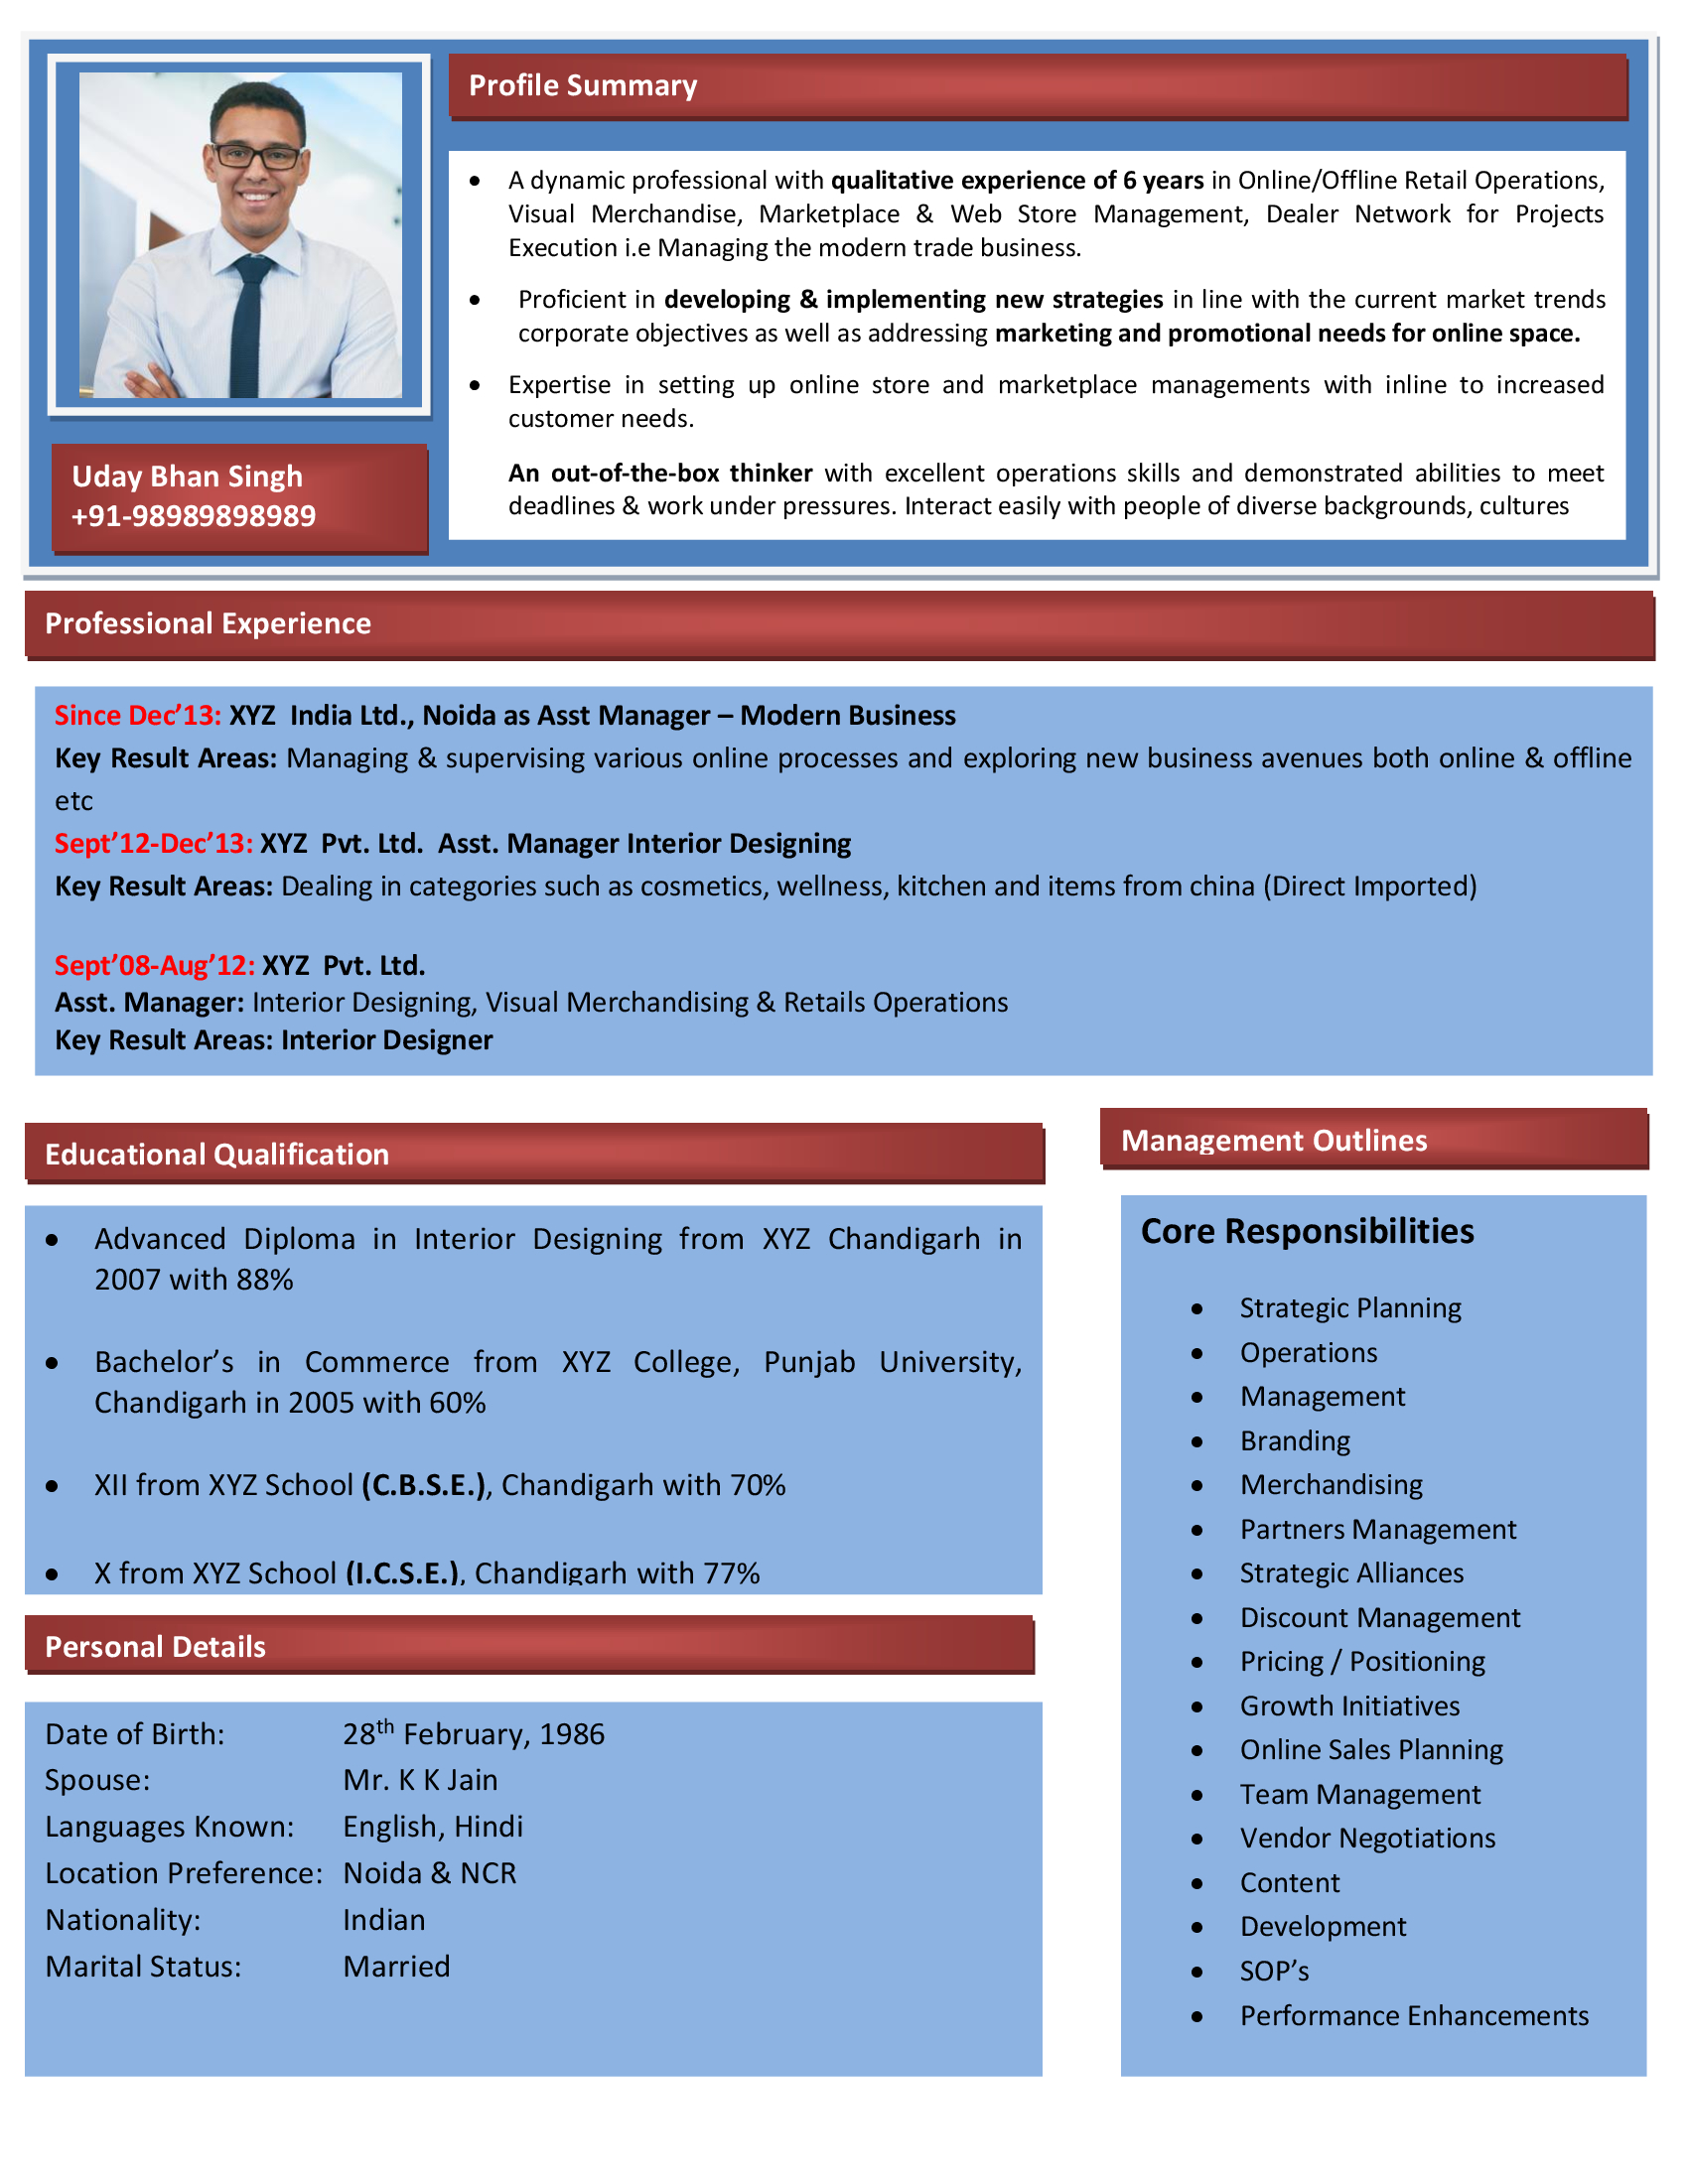 ndt technician resume templates ndt technician cv ndt technician best resume best resume 2